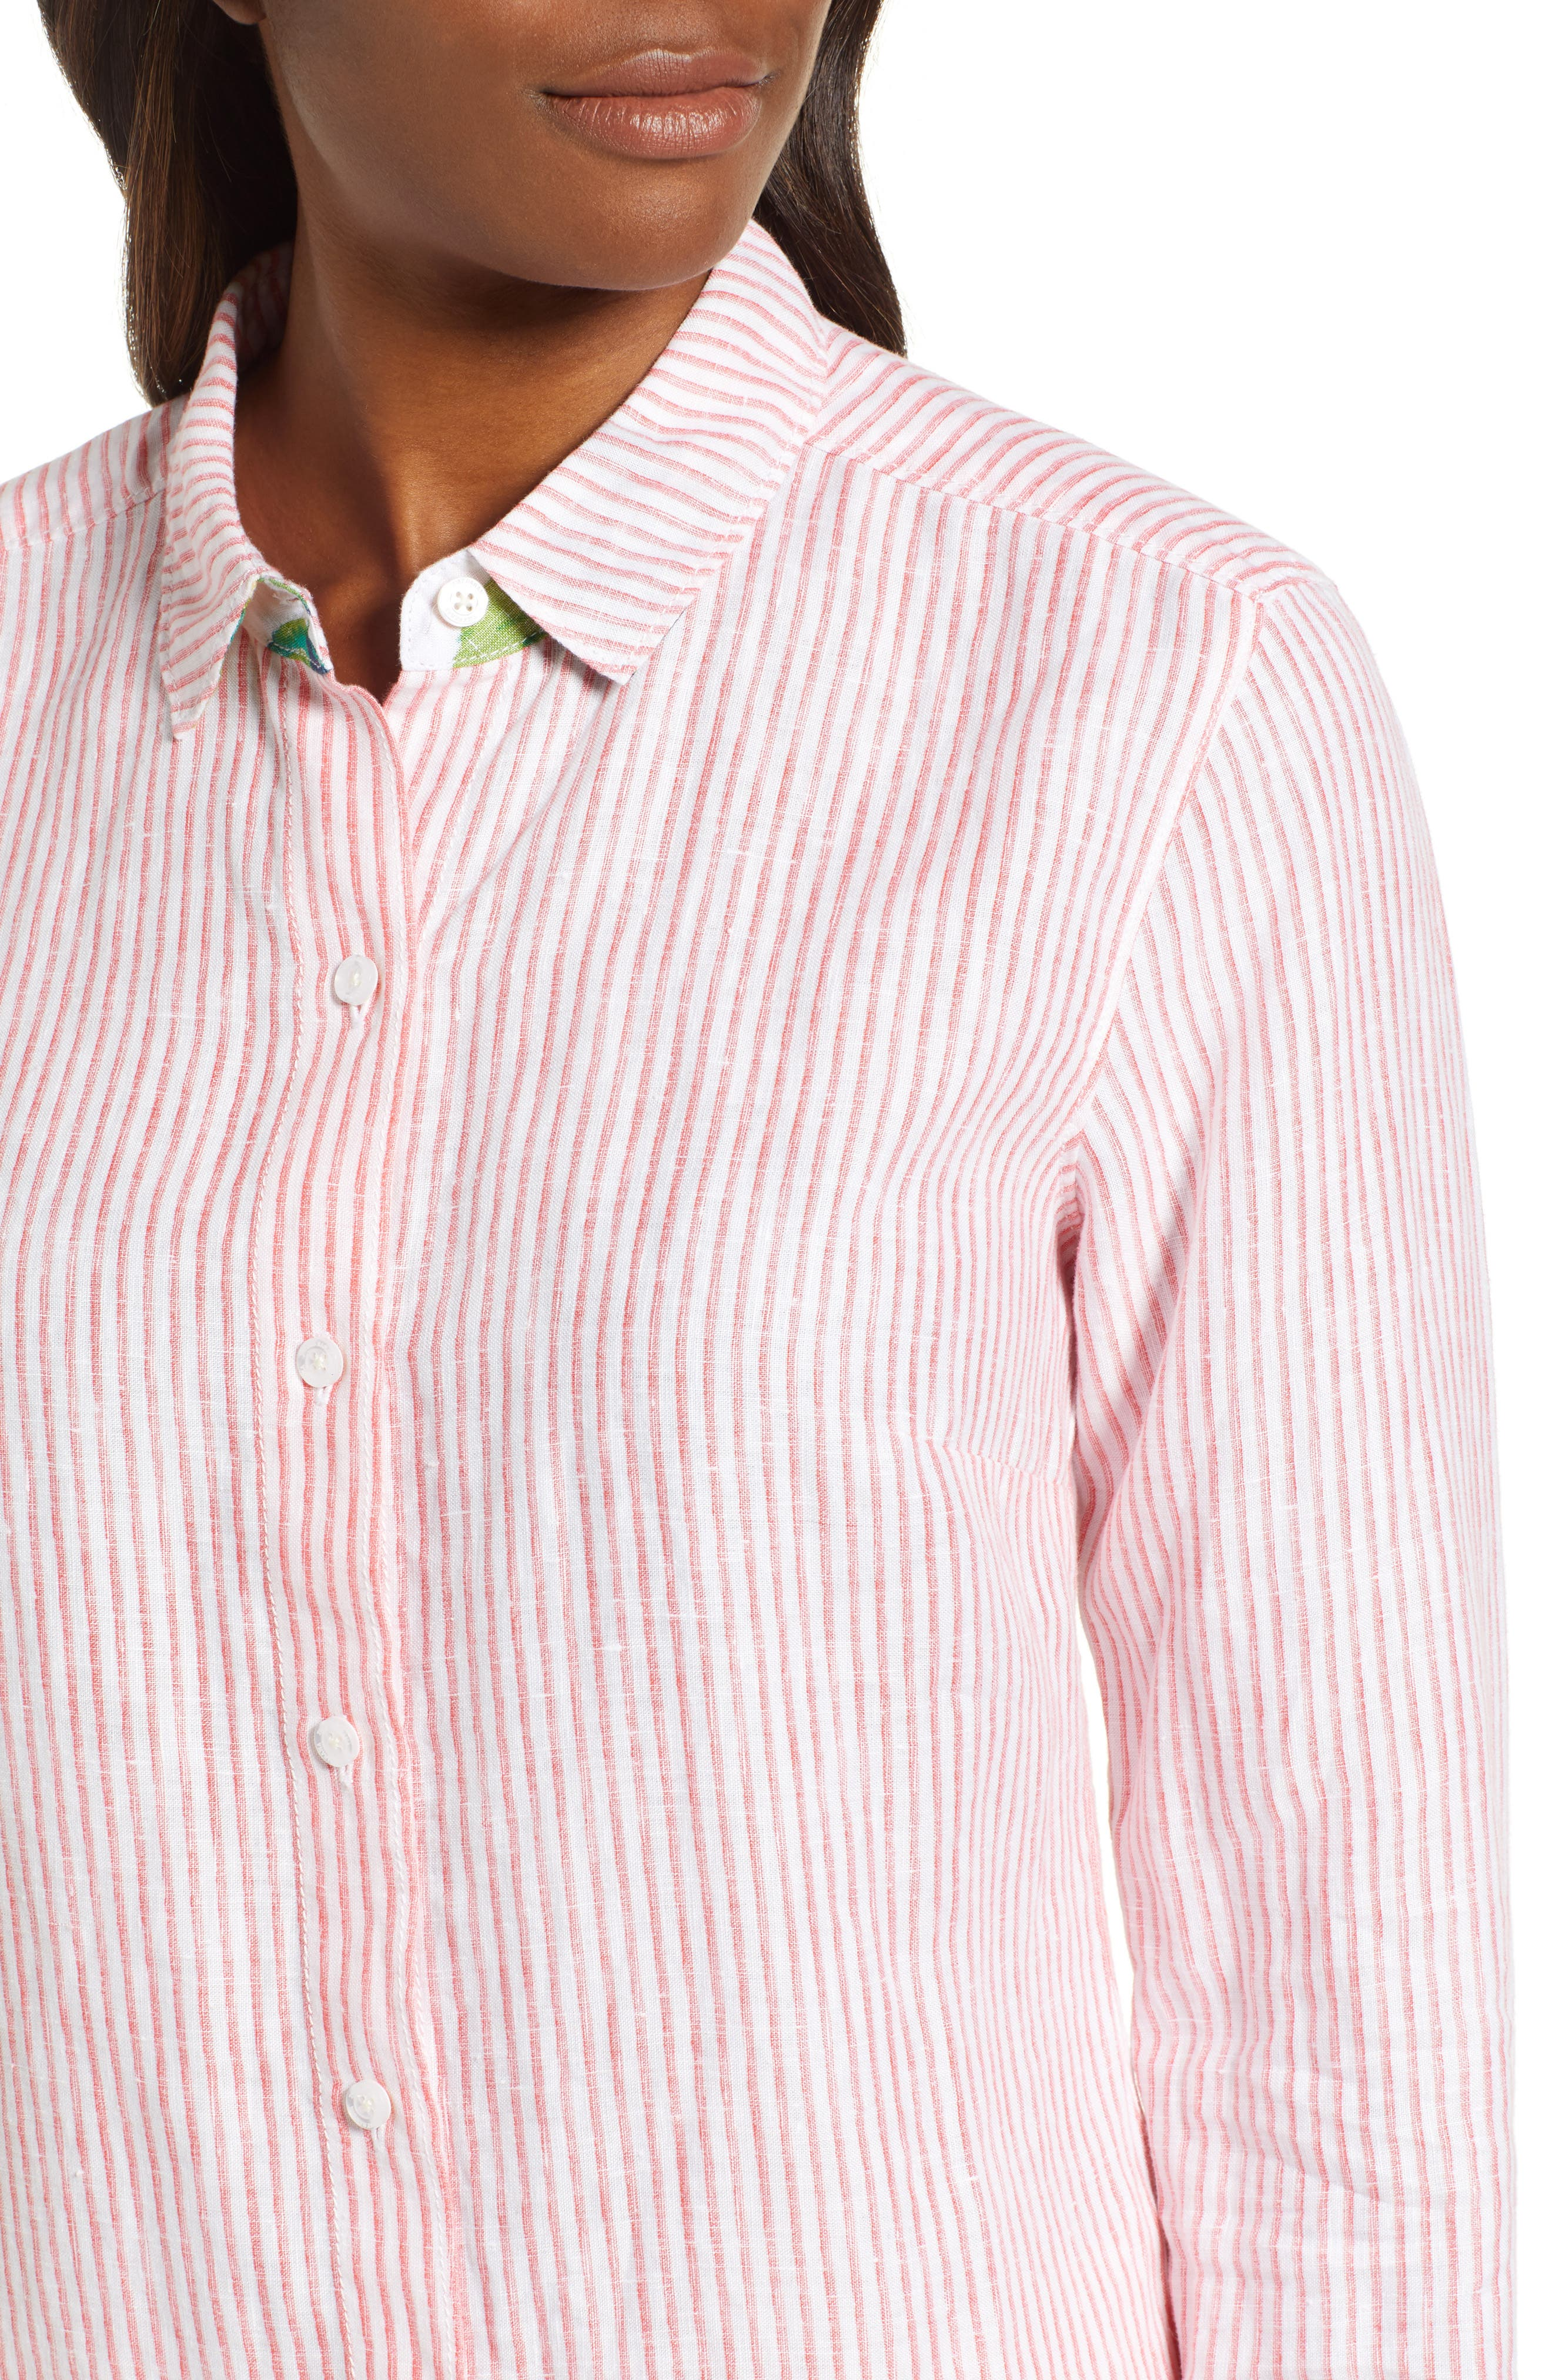 Crystalline Waters Long Sleeve Shirt,                             Alternate thumbnail 4, color,                             DUBARRY CORAL